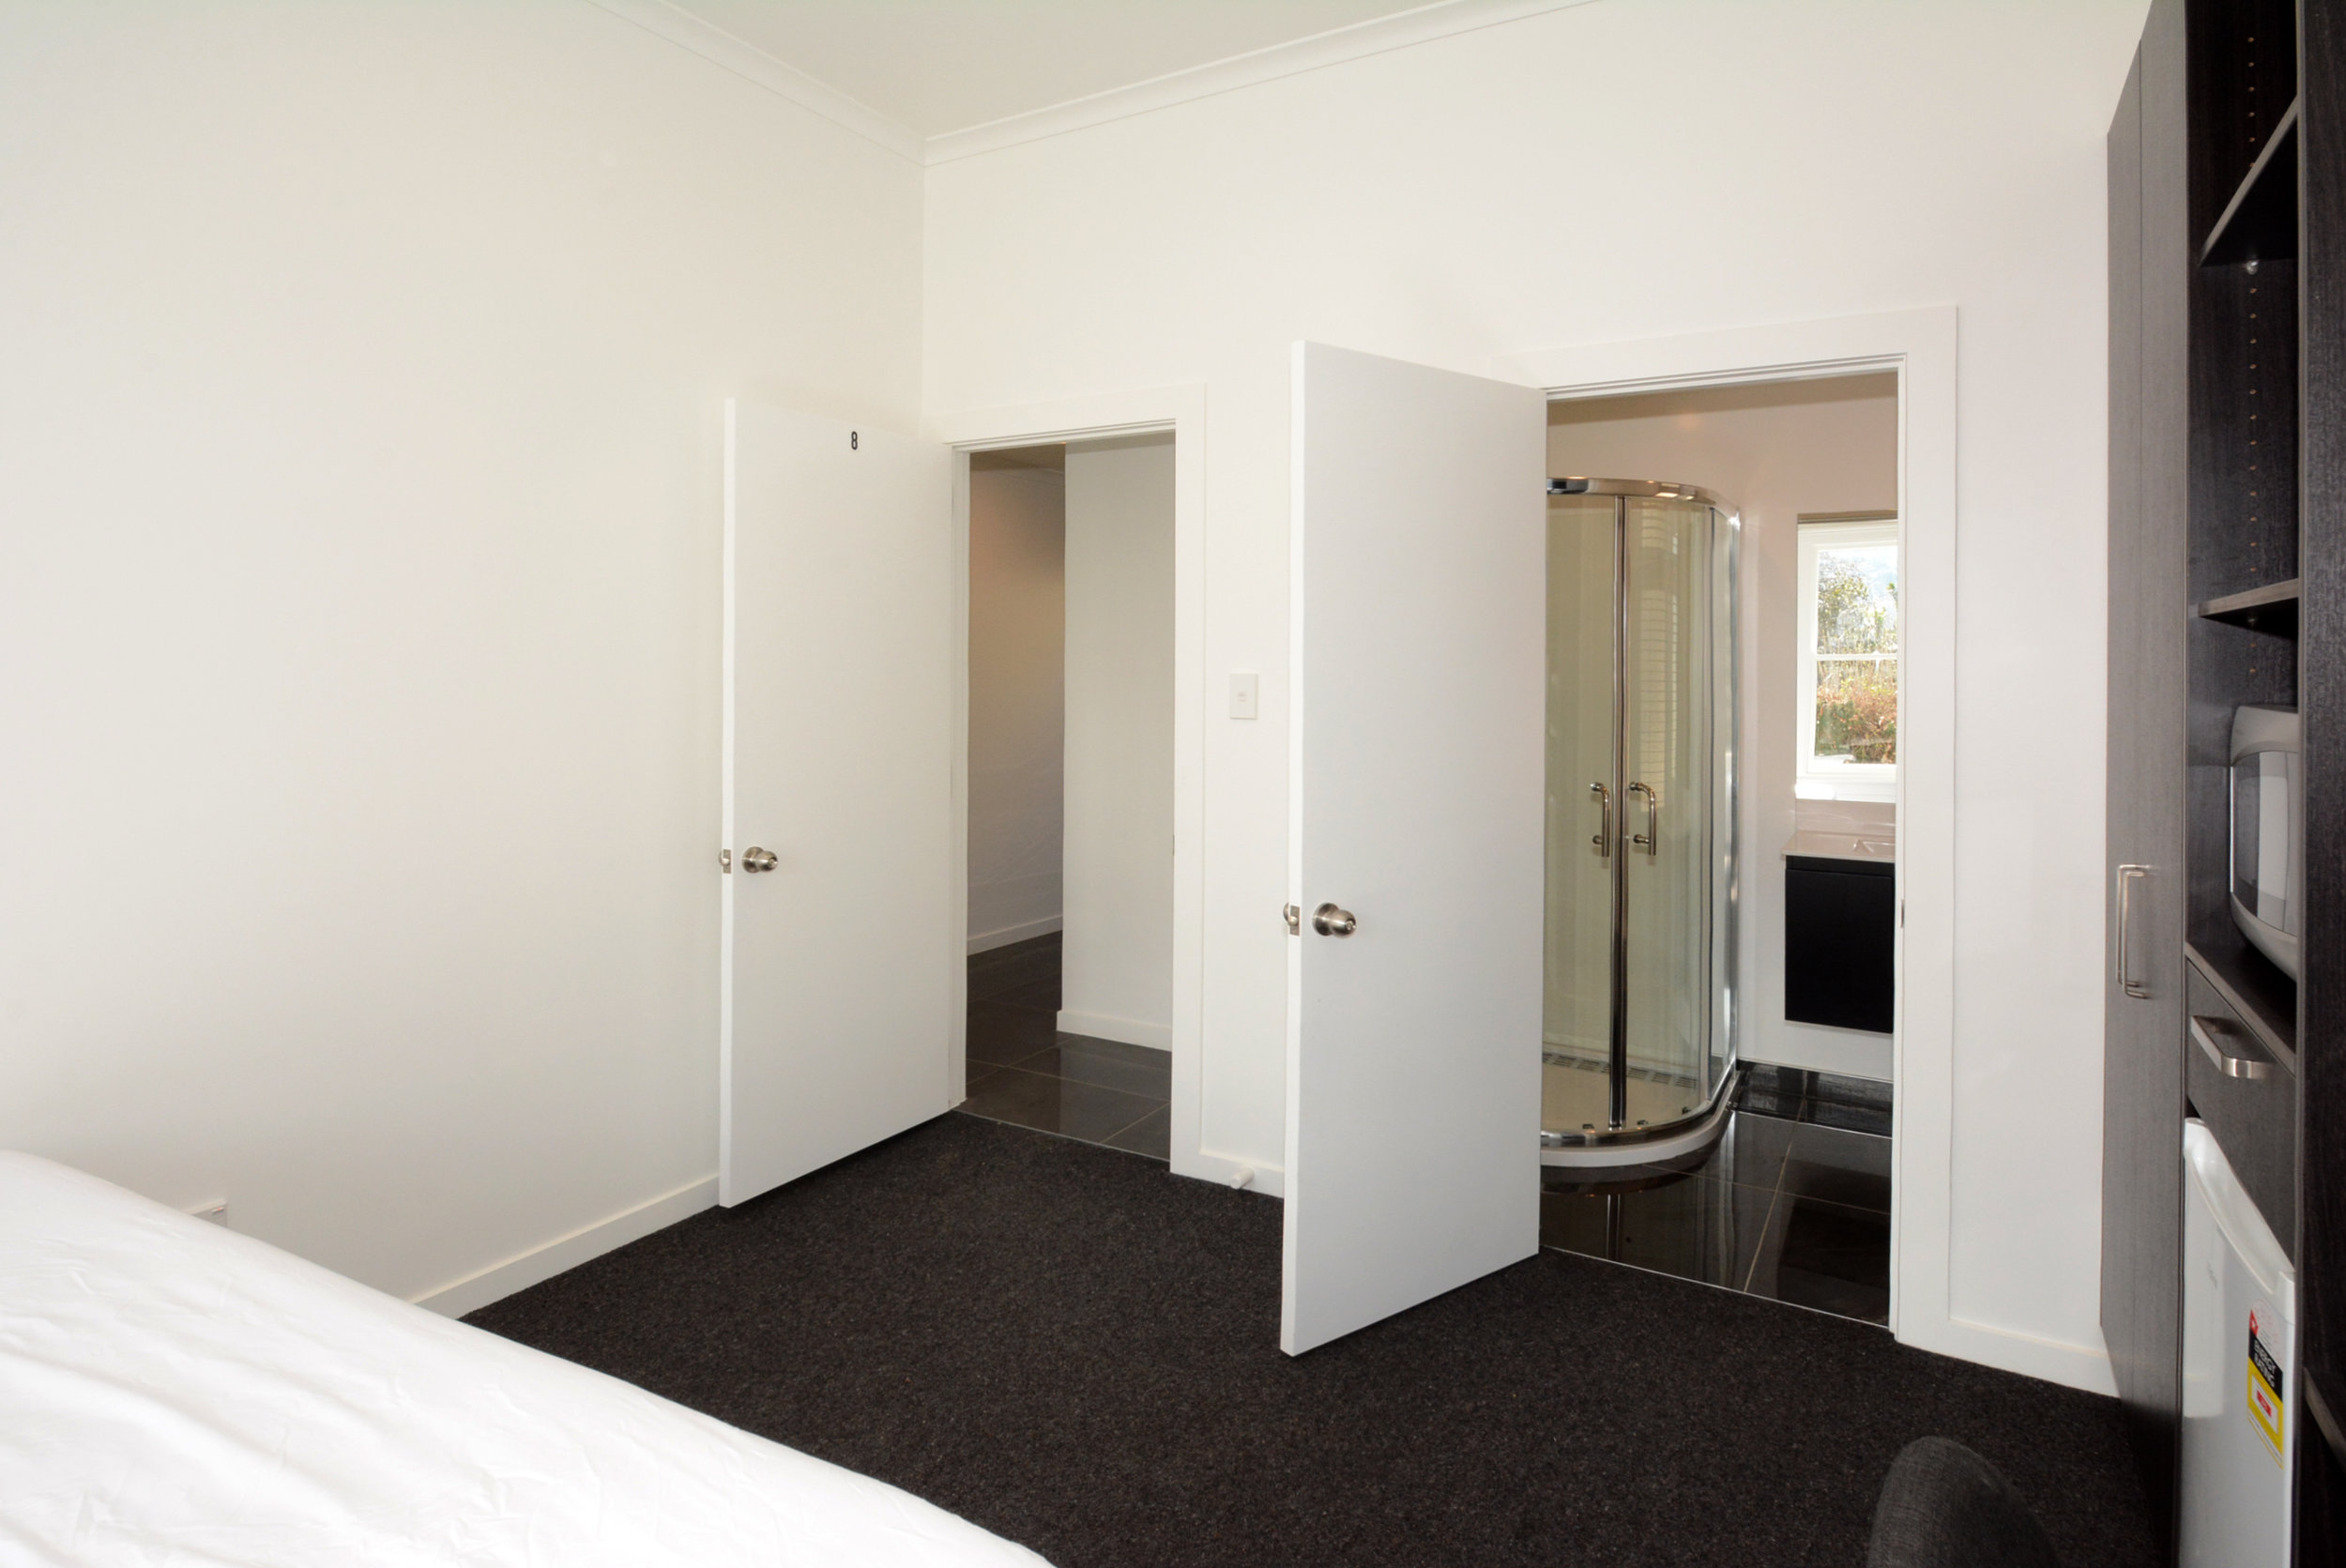 Execution Studio room entrance and ensuite bathroom